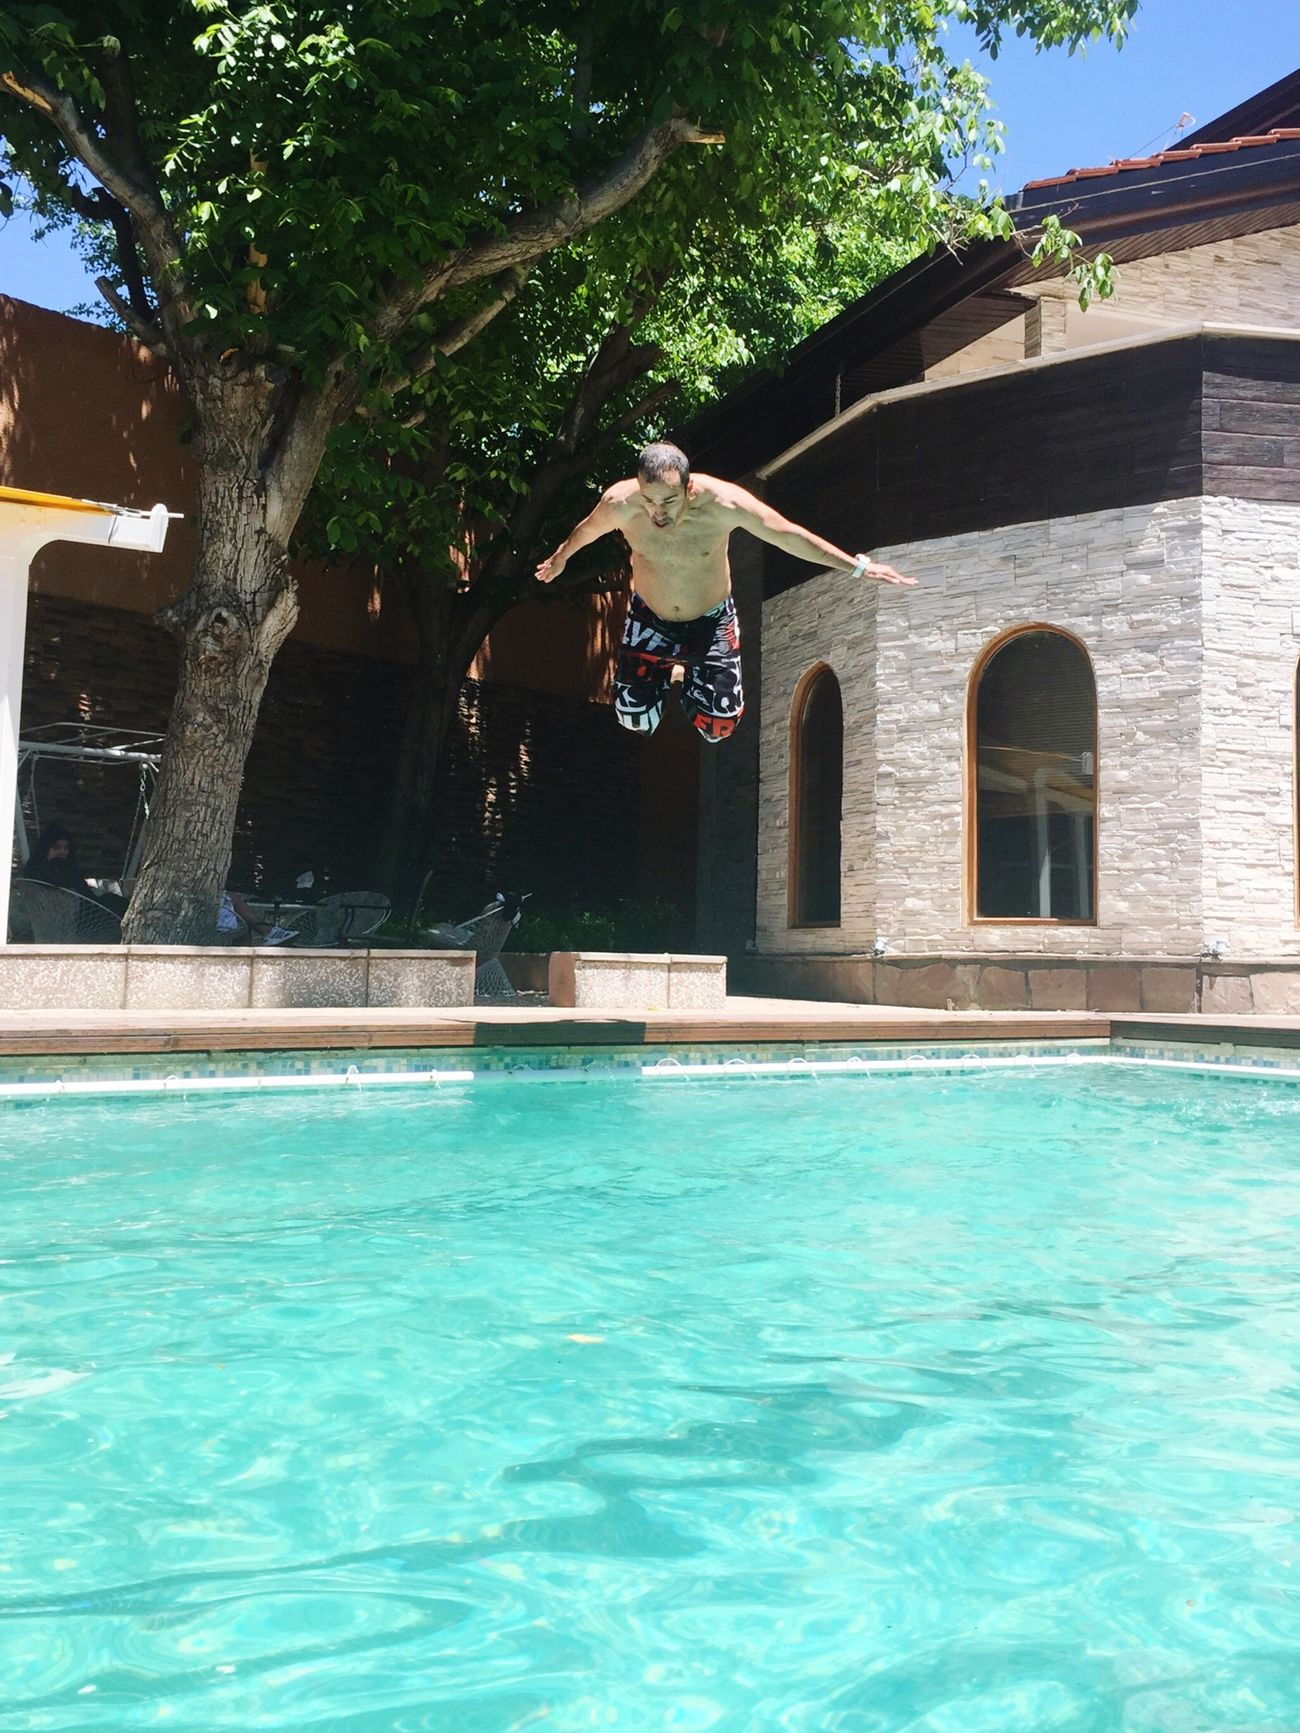 It's Me Pool Diving Basejump Hyper Powermoves Ehsanpepsi Pepsi Water Cold